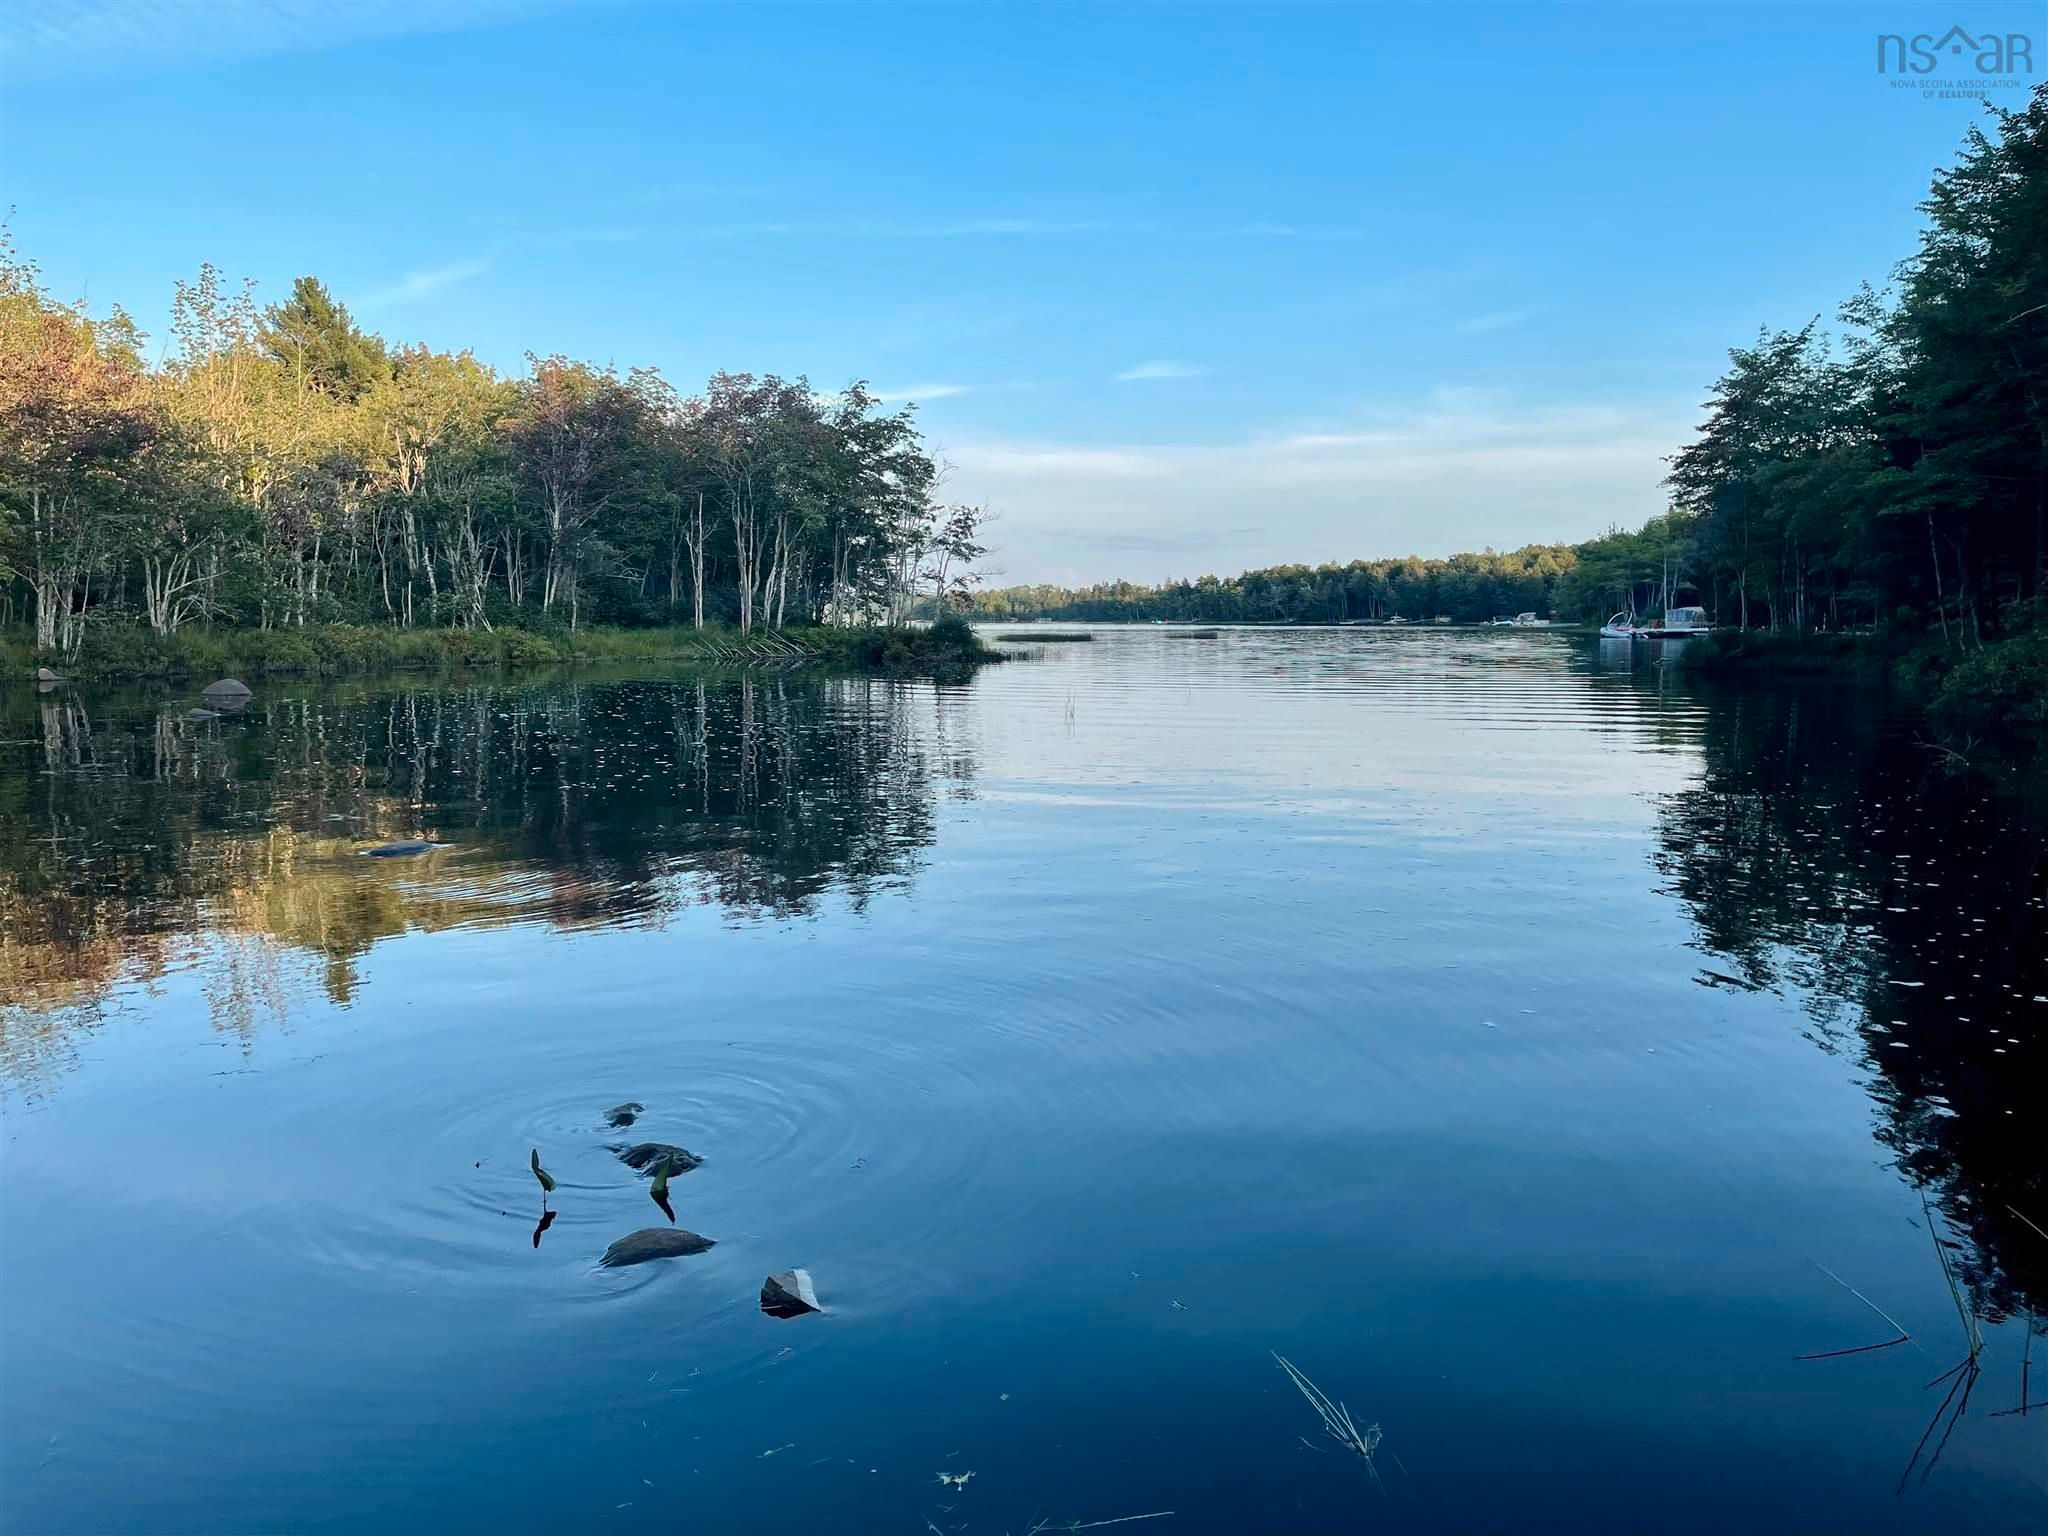 Main Photo: Lot 212 1092 McCabe Lake Drive in Middle Sackville: 26-Beaverbank, Upper Sackville Vacant Land for sale (Halifax-Dartmouth)  : MLS®# 202122912